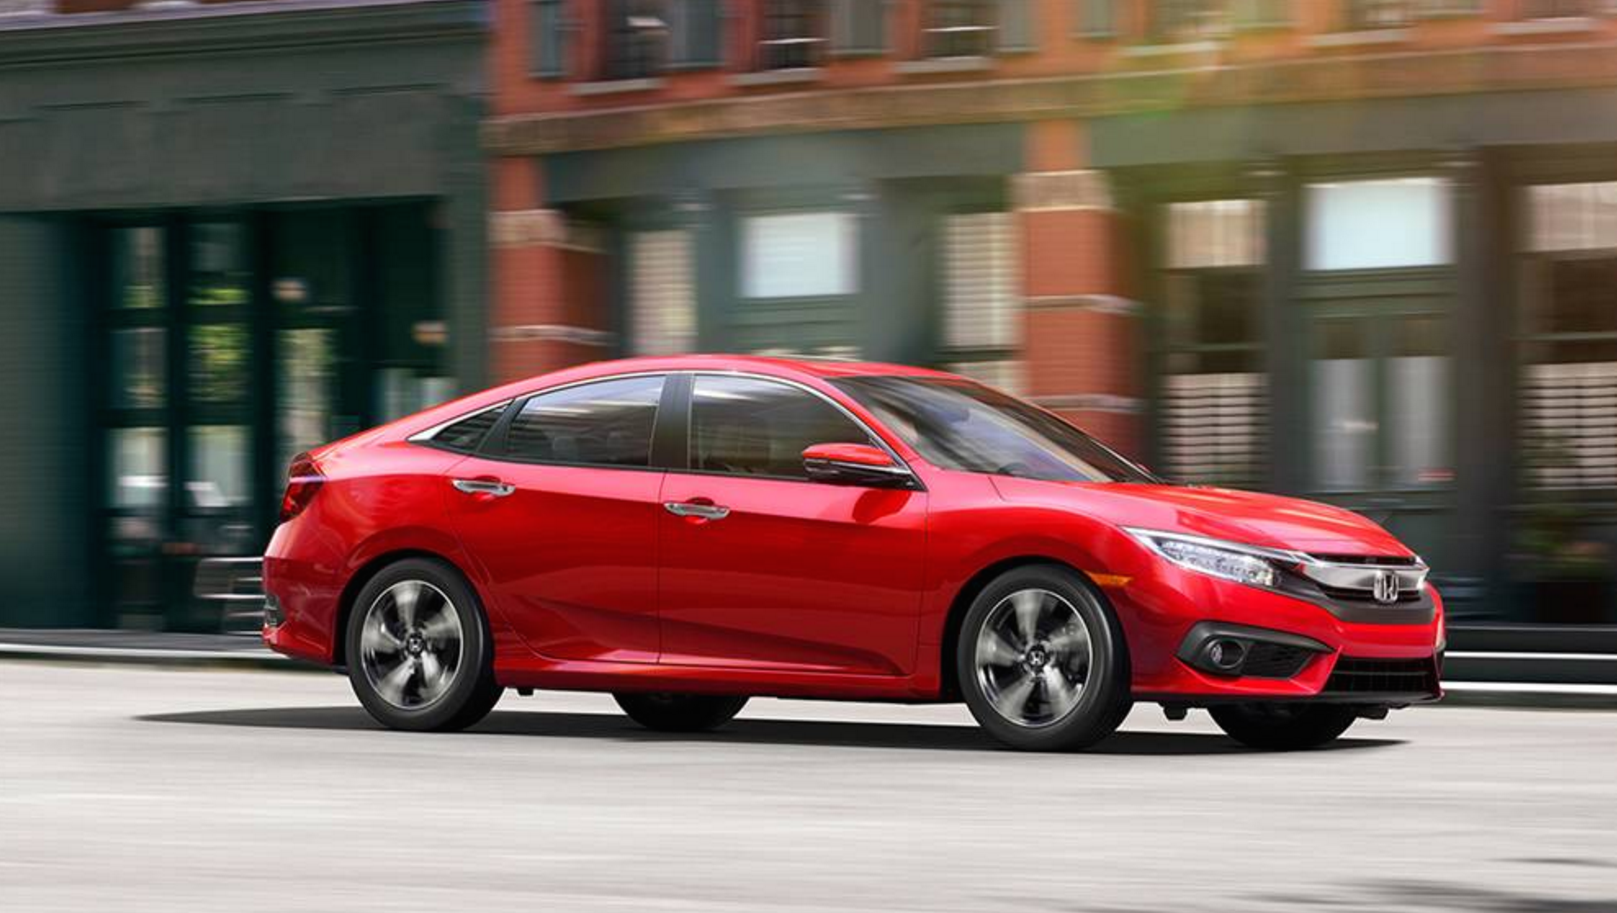 Honda Officially Recalls 2016 Civics Over Engine Failures, Continues Halt To New Sales